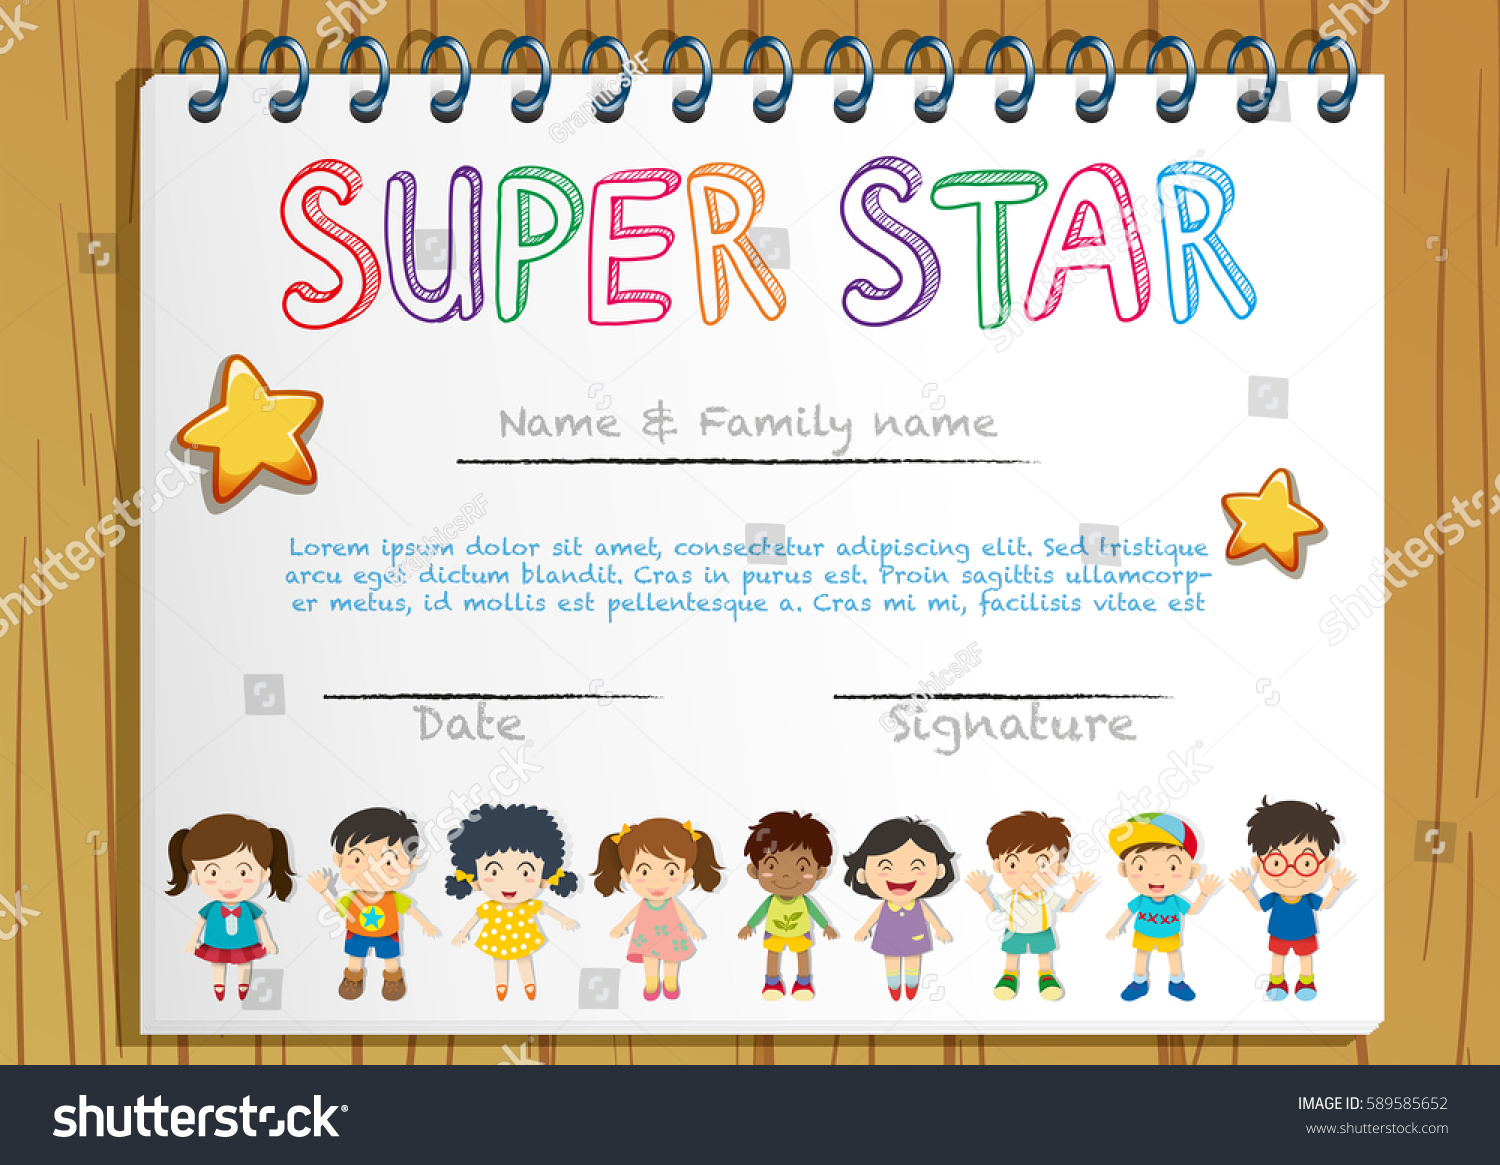 Certificate template super star illustration stock vector certificate template for super star illustration xflitez Choice Image